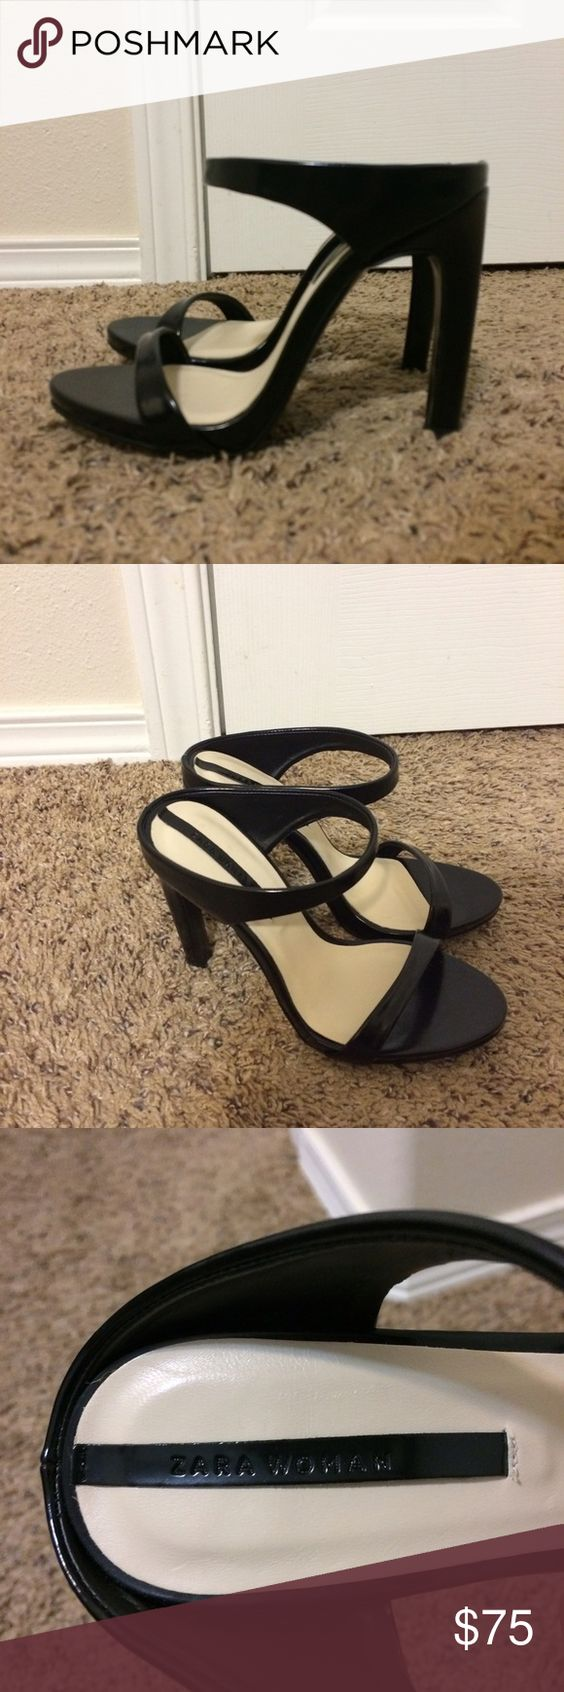 ZARA Black Heels Practically brand new. Amazing condition. They are a bit tight on the toes. Zara Shoes Heels